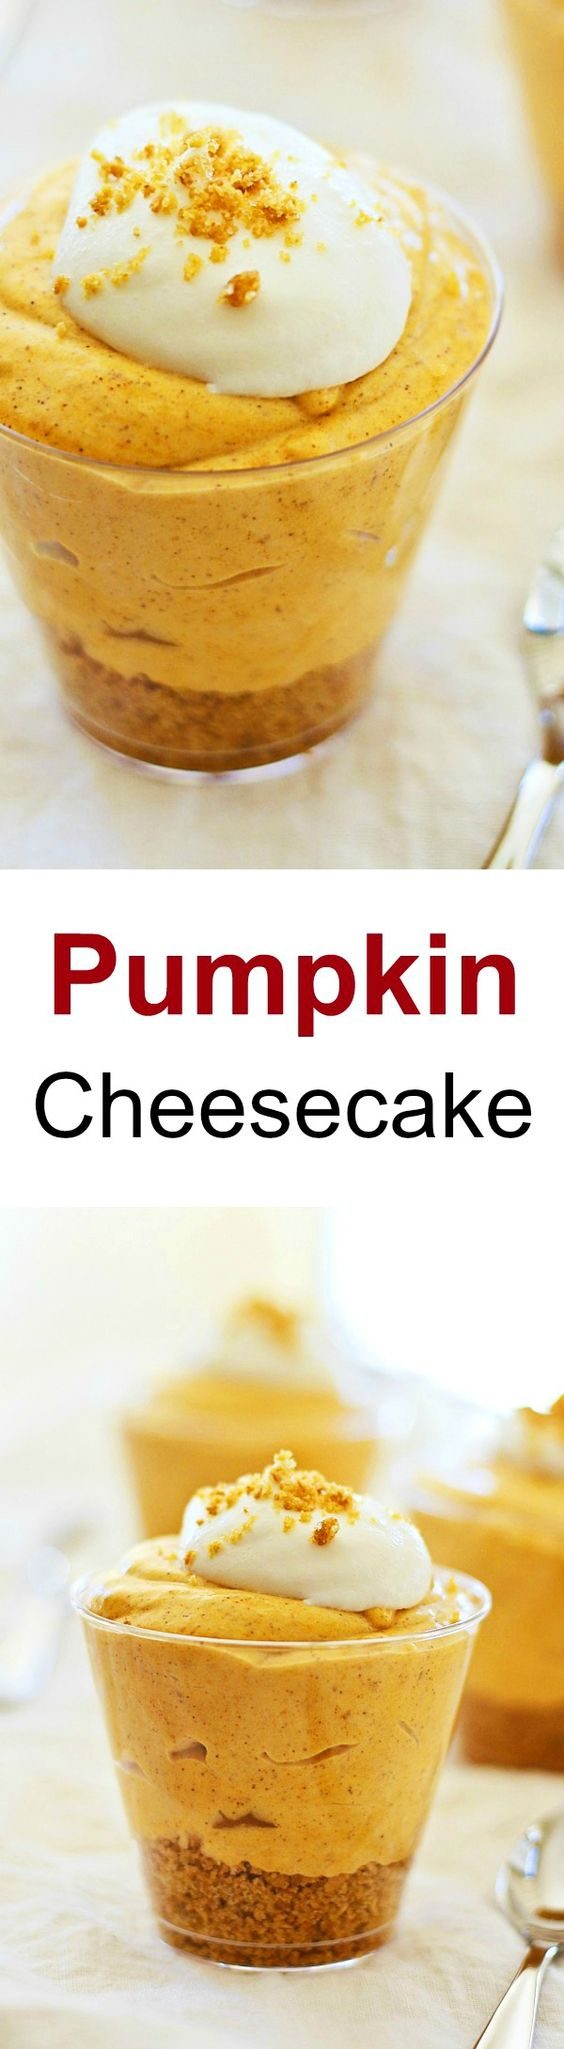 Pumpkin Cheesecake - THE BEST fall cheesecake ever! Fast, easy, no-bake with easy ingredients of pumpkin, cream cheese and sugar to make the cheesecake | rasamalaysia.com